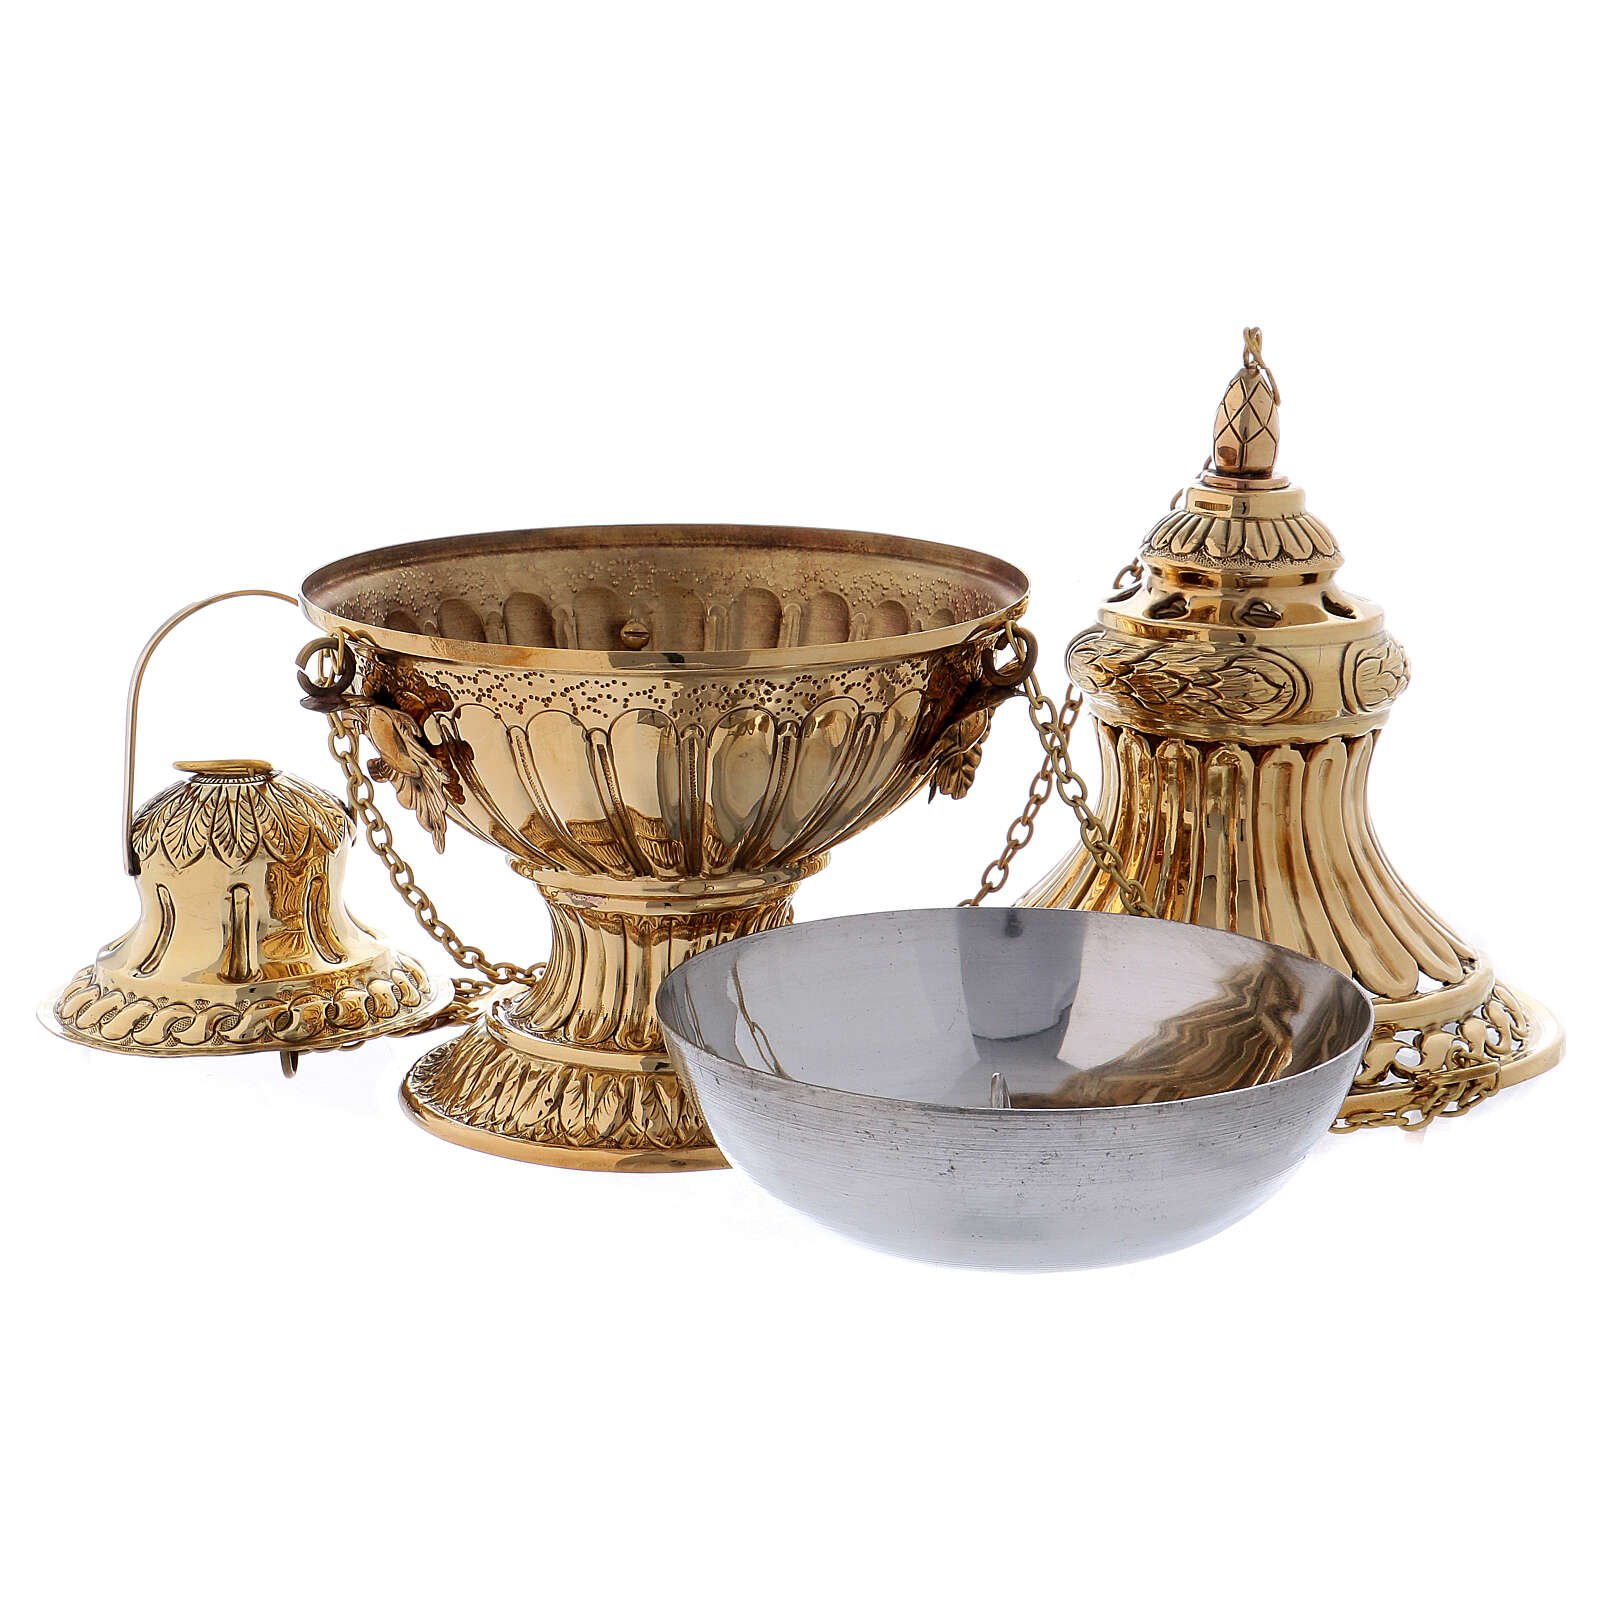 Decorated and carved thurible in gold plated brass 11 3/4 in 3